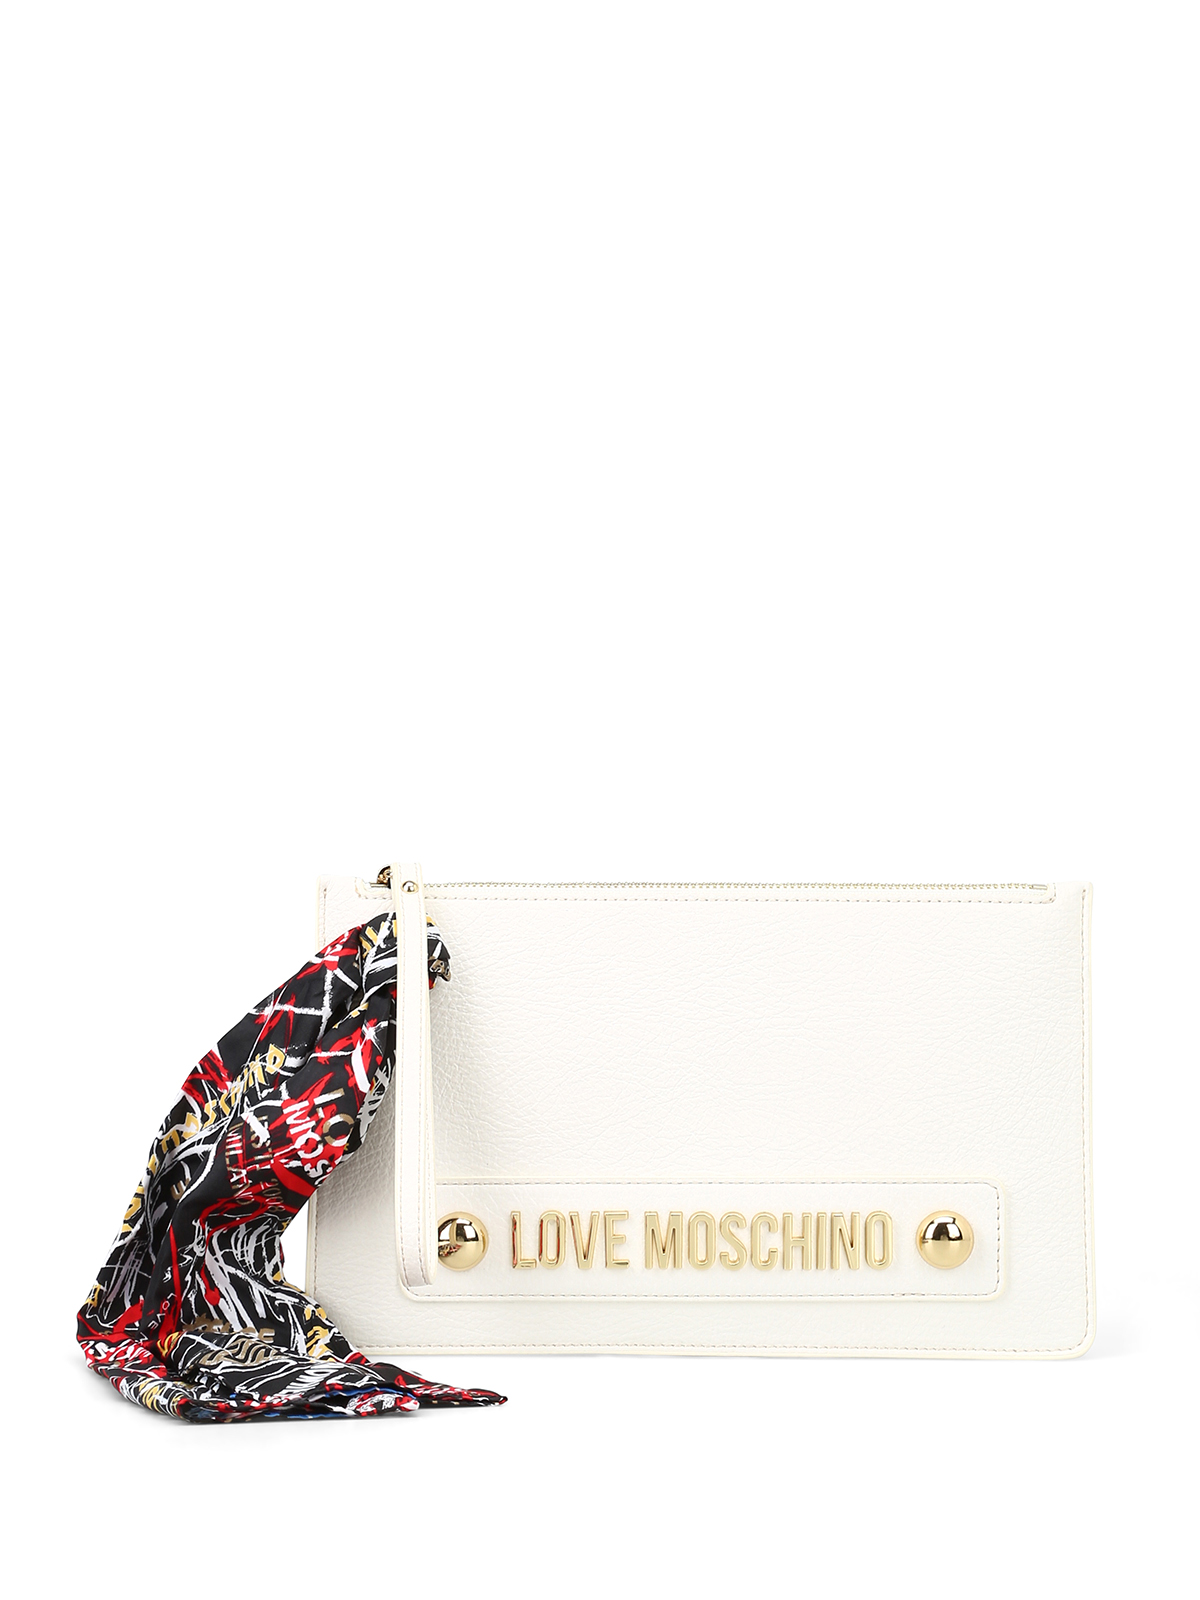 Pochette di Love Moschino multicolore con base rossa